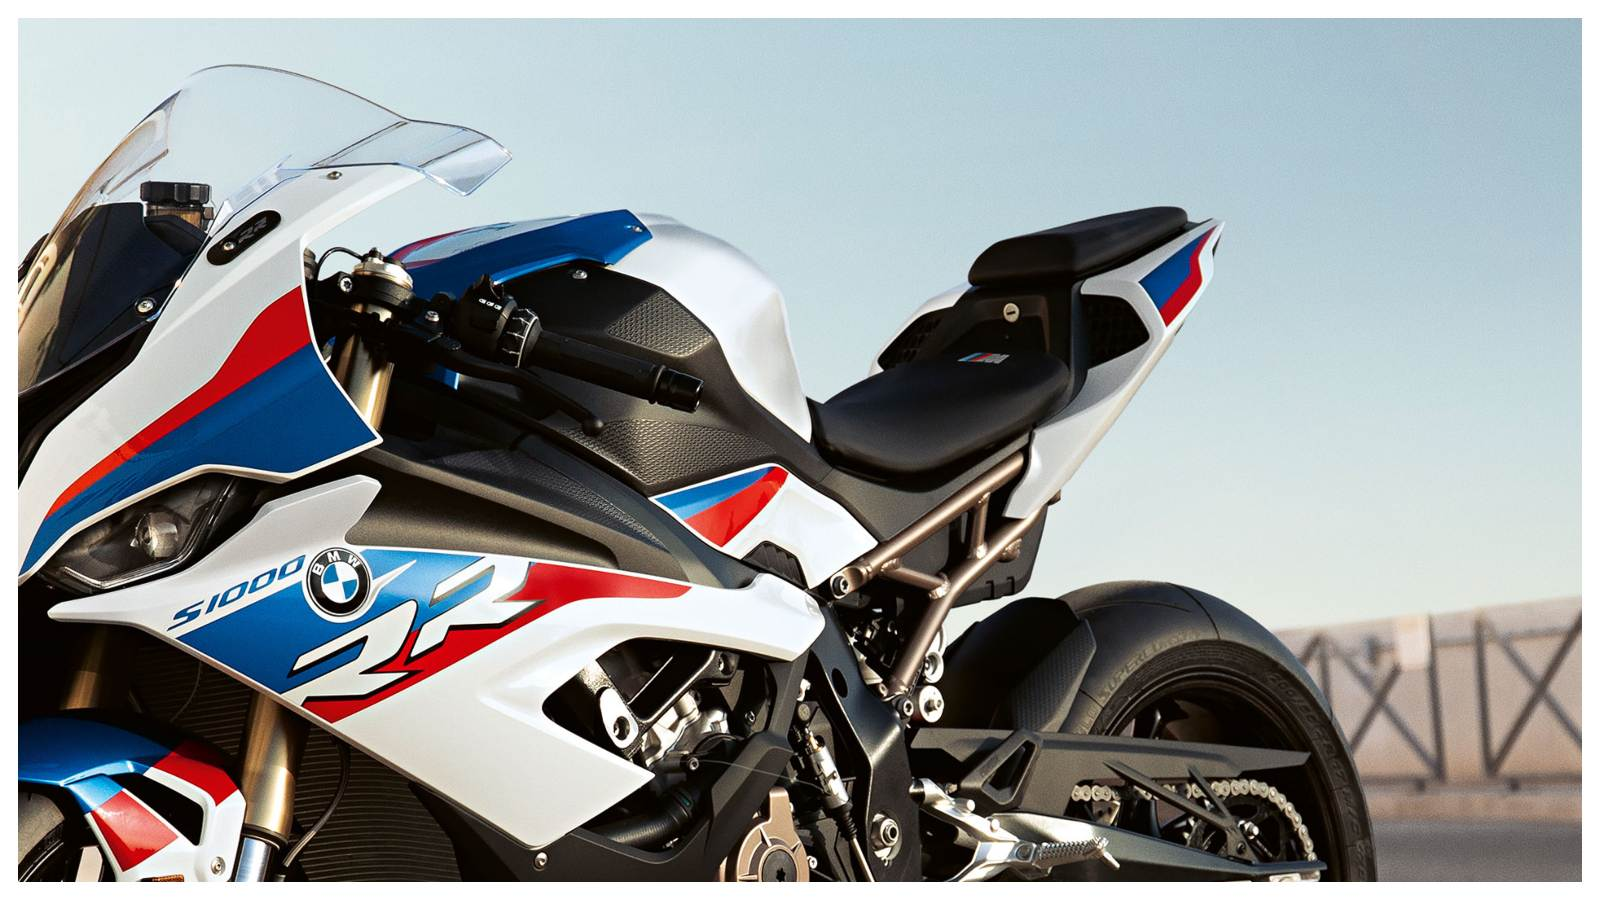 2019 Bmw S1000 Rr Launched In India Prices Start From Inr 18 50